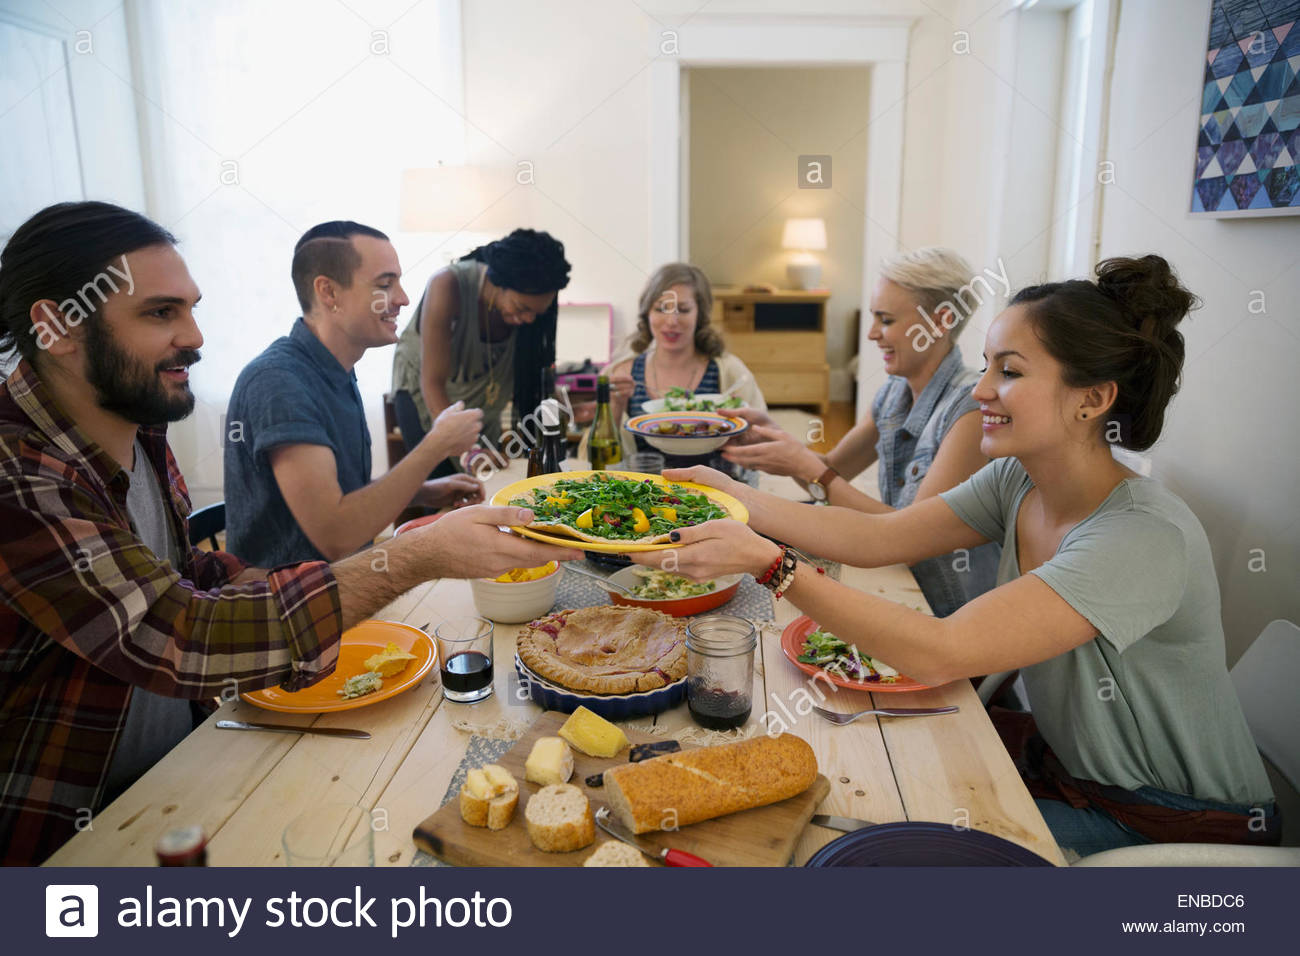 Friends passing food at dinner party - Stock Image